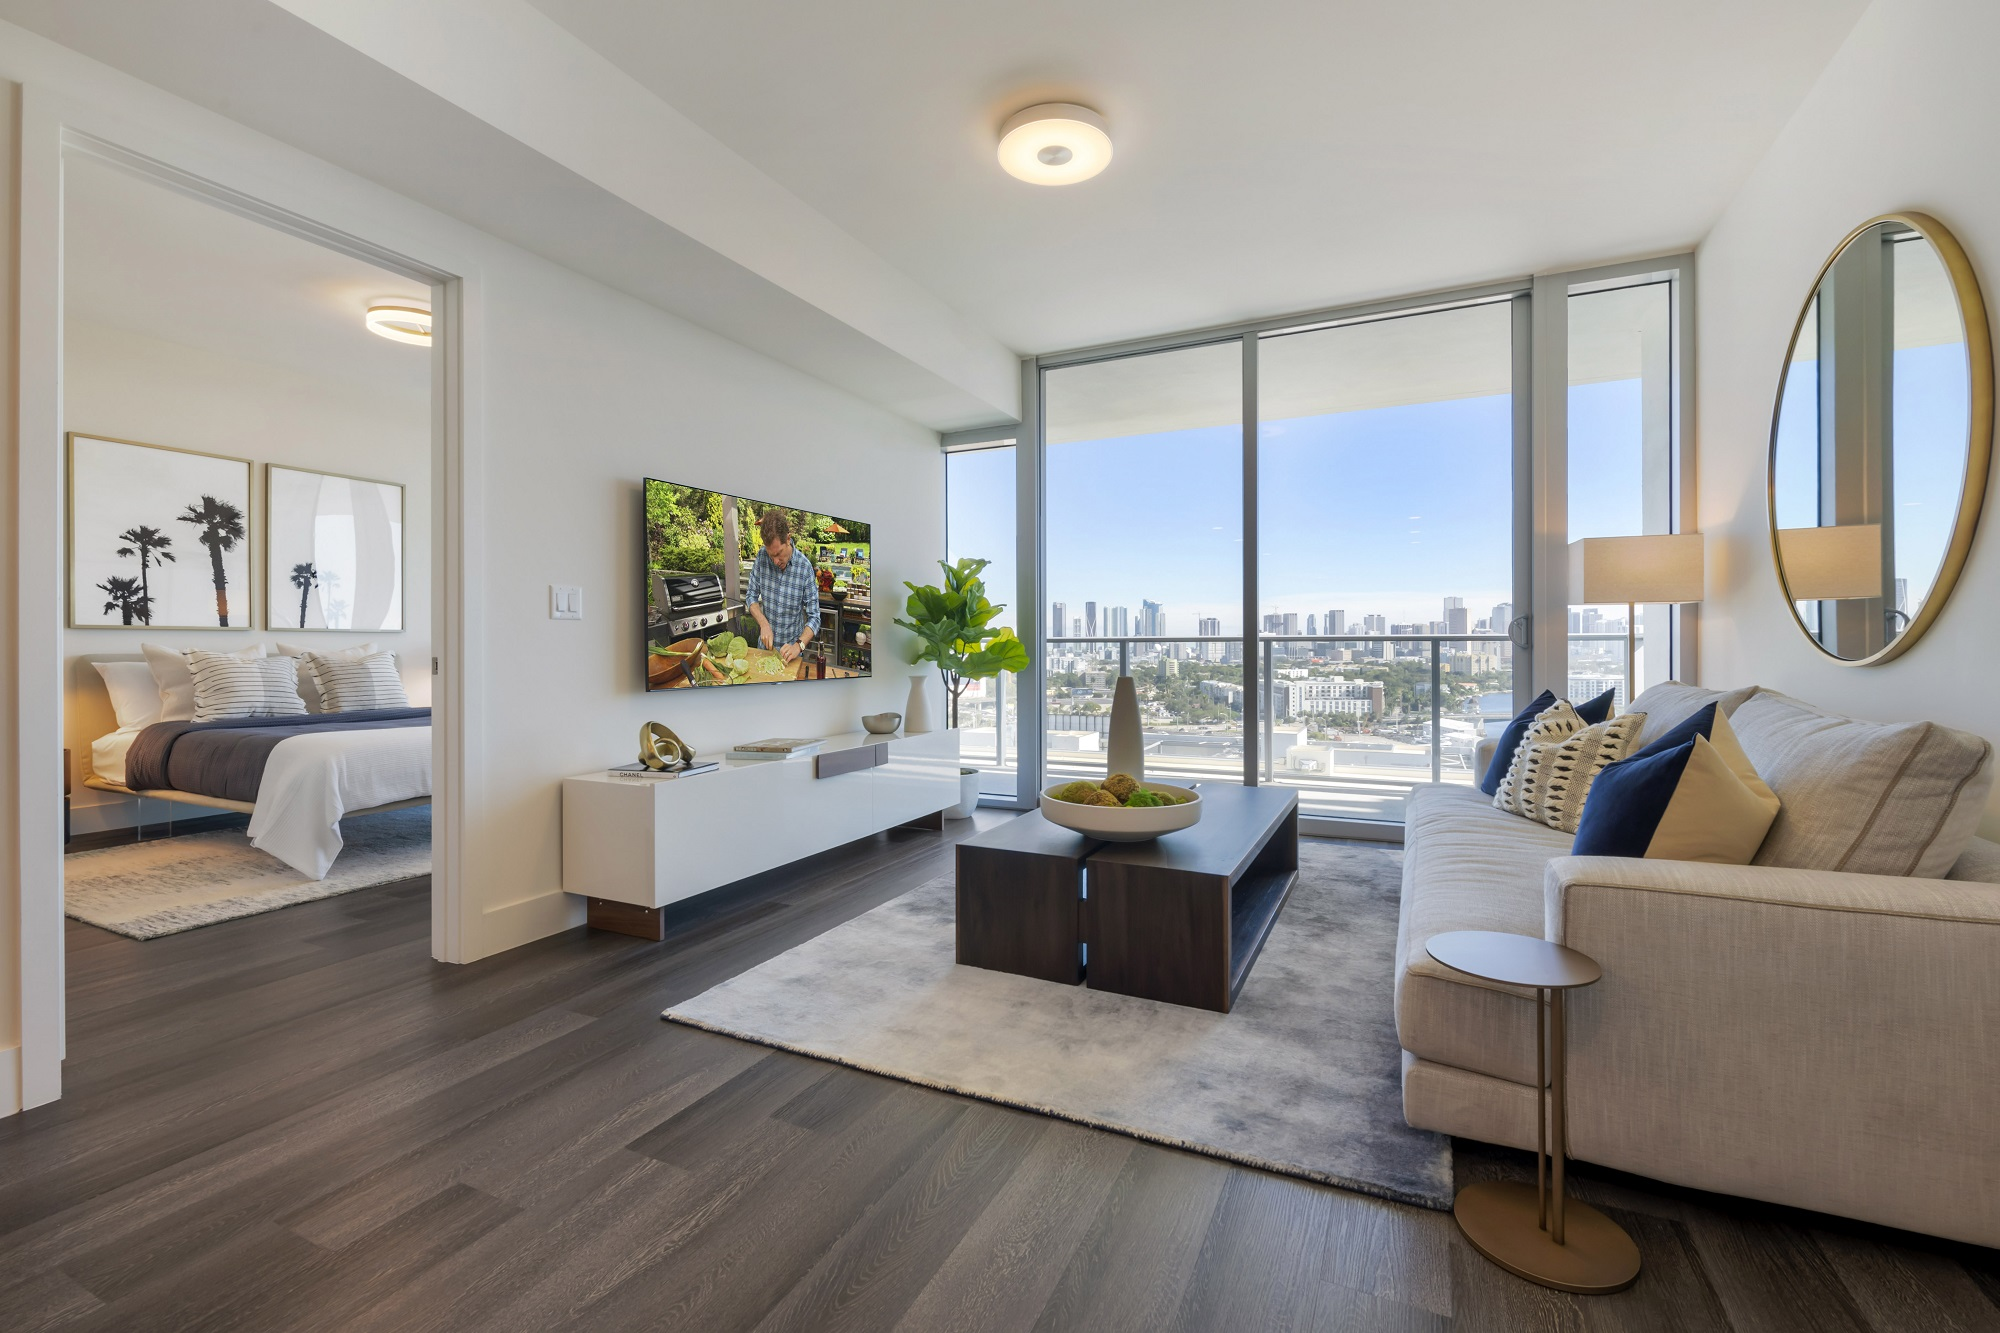 Living room with wood-style floors, floor to ceiling windows, door to balcony and accent wall